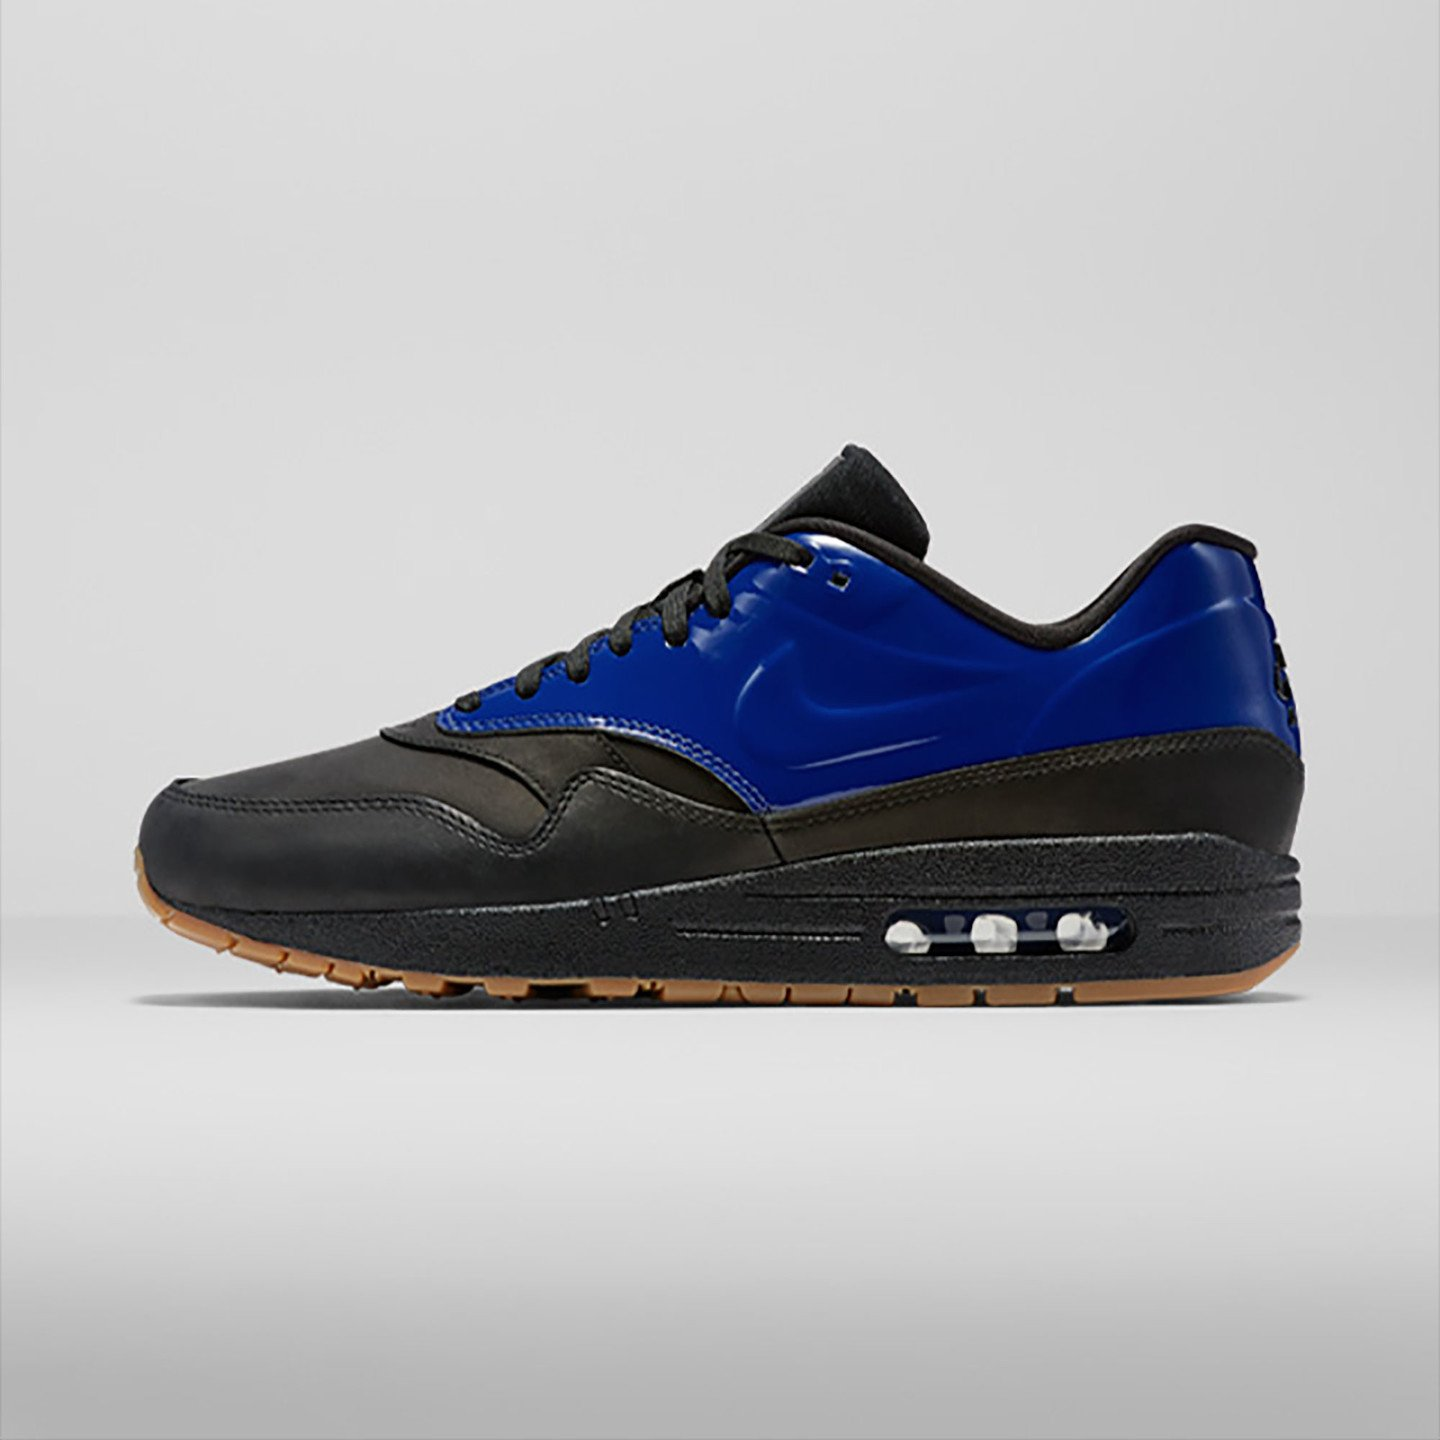 Nike Air Max 1 Vac Tech QS Deep Royal Blue / Black 831113-400-42